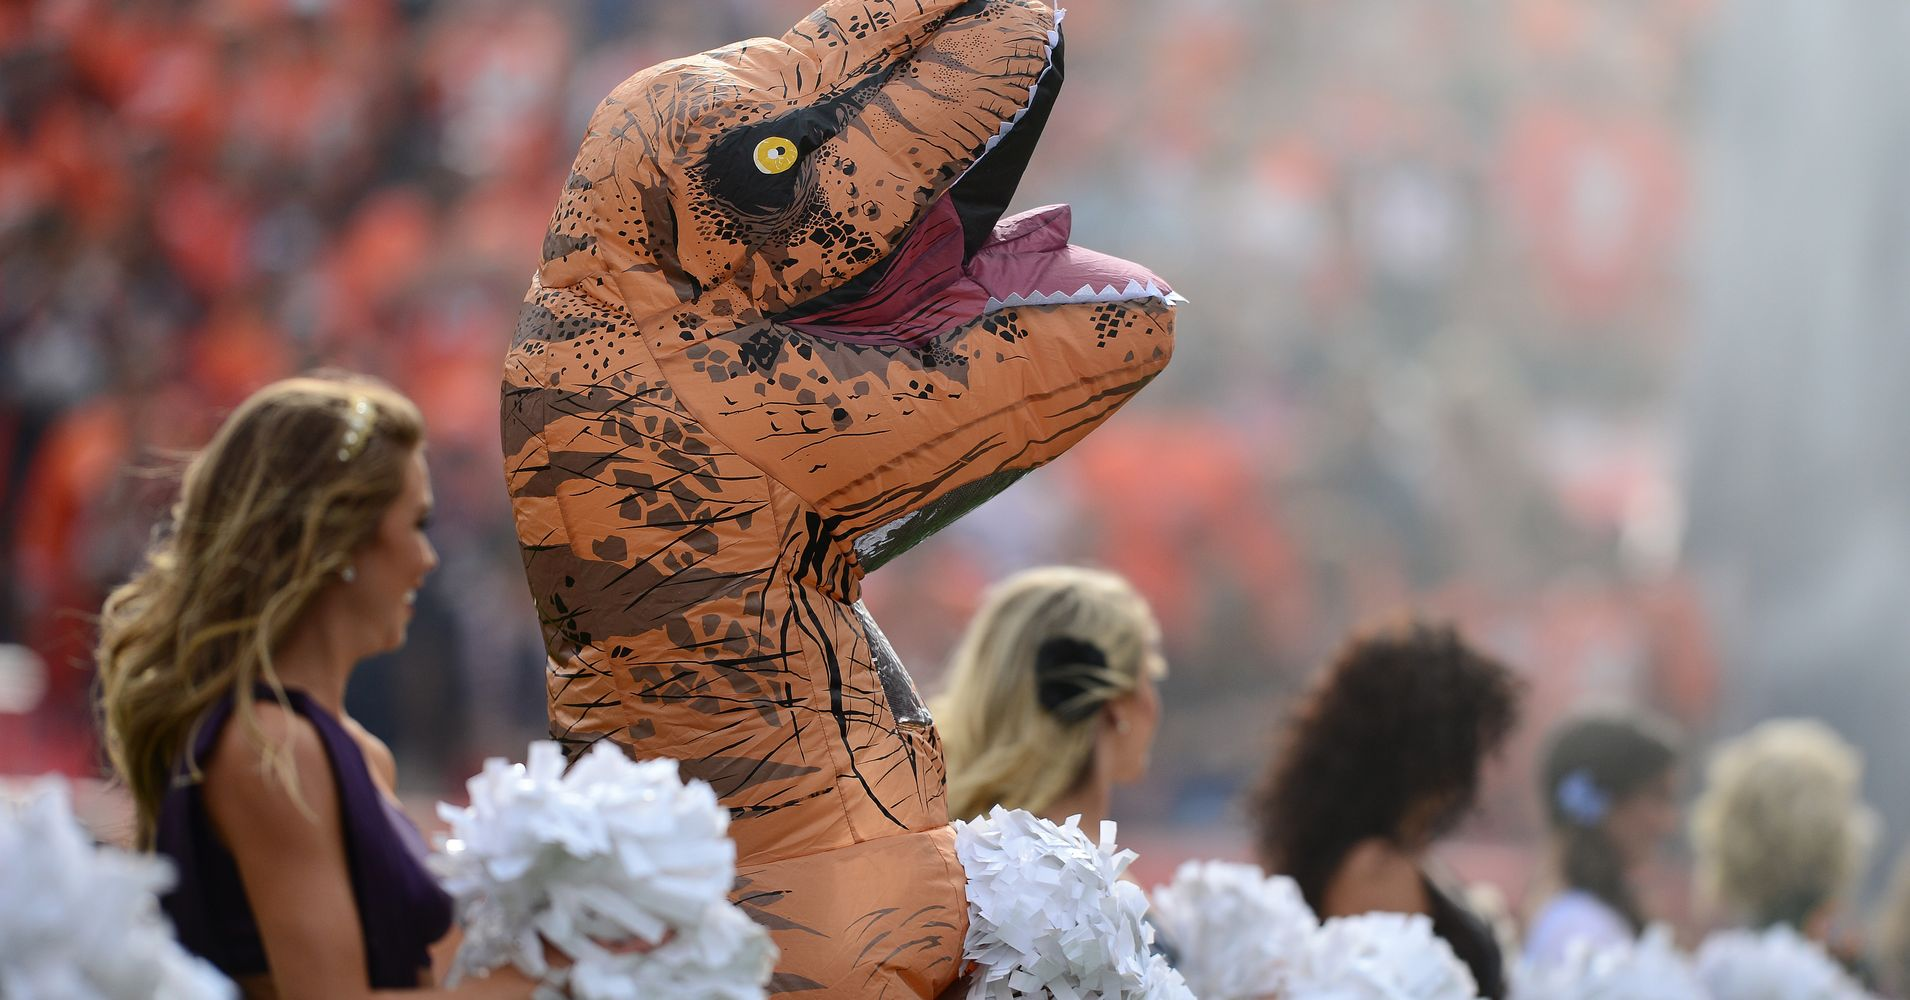 This Dinosaur Cheerleader Is The Real Winner Of Bronco